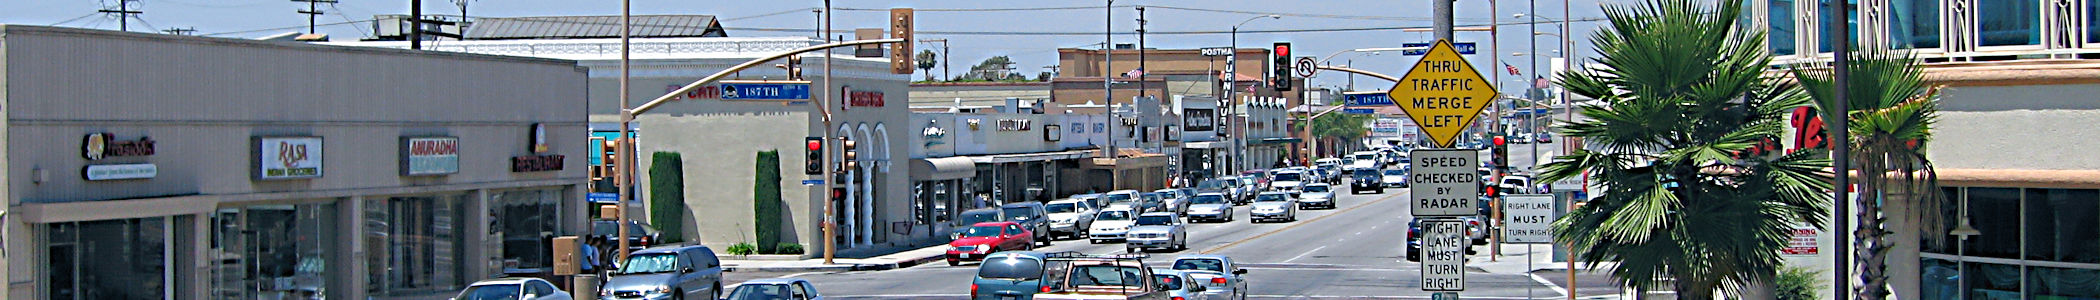 New Pioneer Travel >> Artesia (California) – Travel guide at Wikivoyage